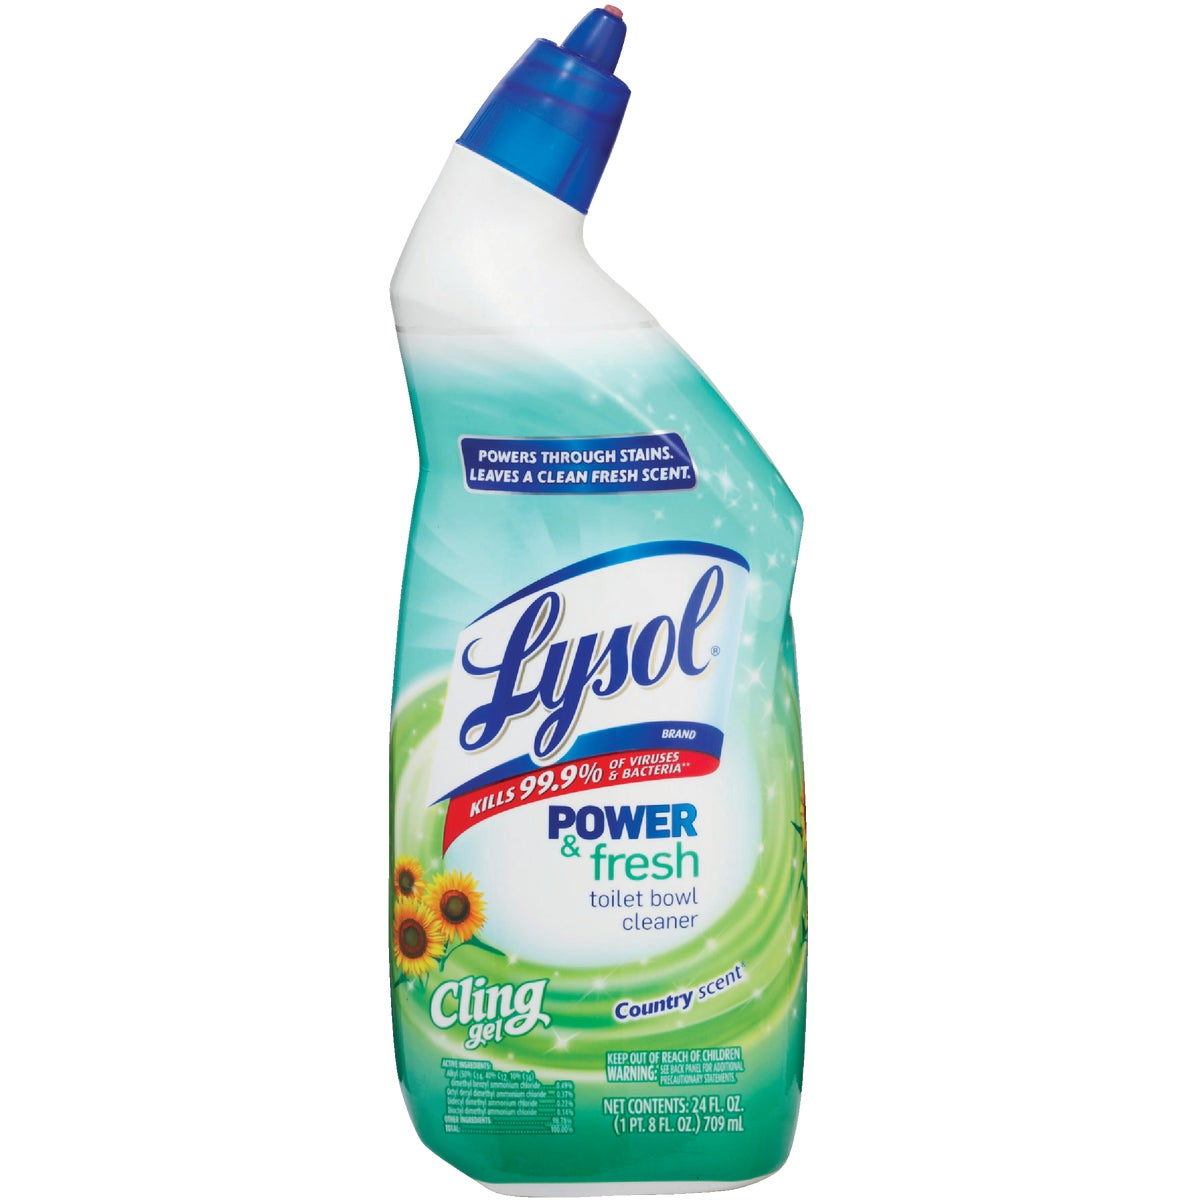 24OZ LIQUID BOWL CLEANER - 1920076878 by Reckitt Benckiser